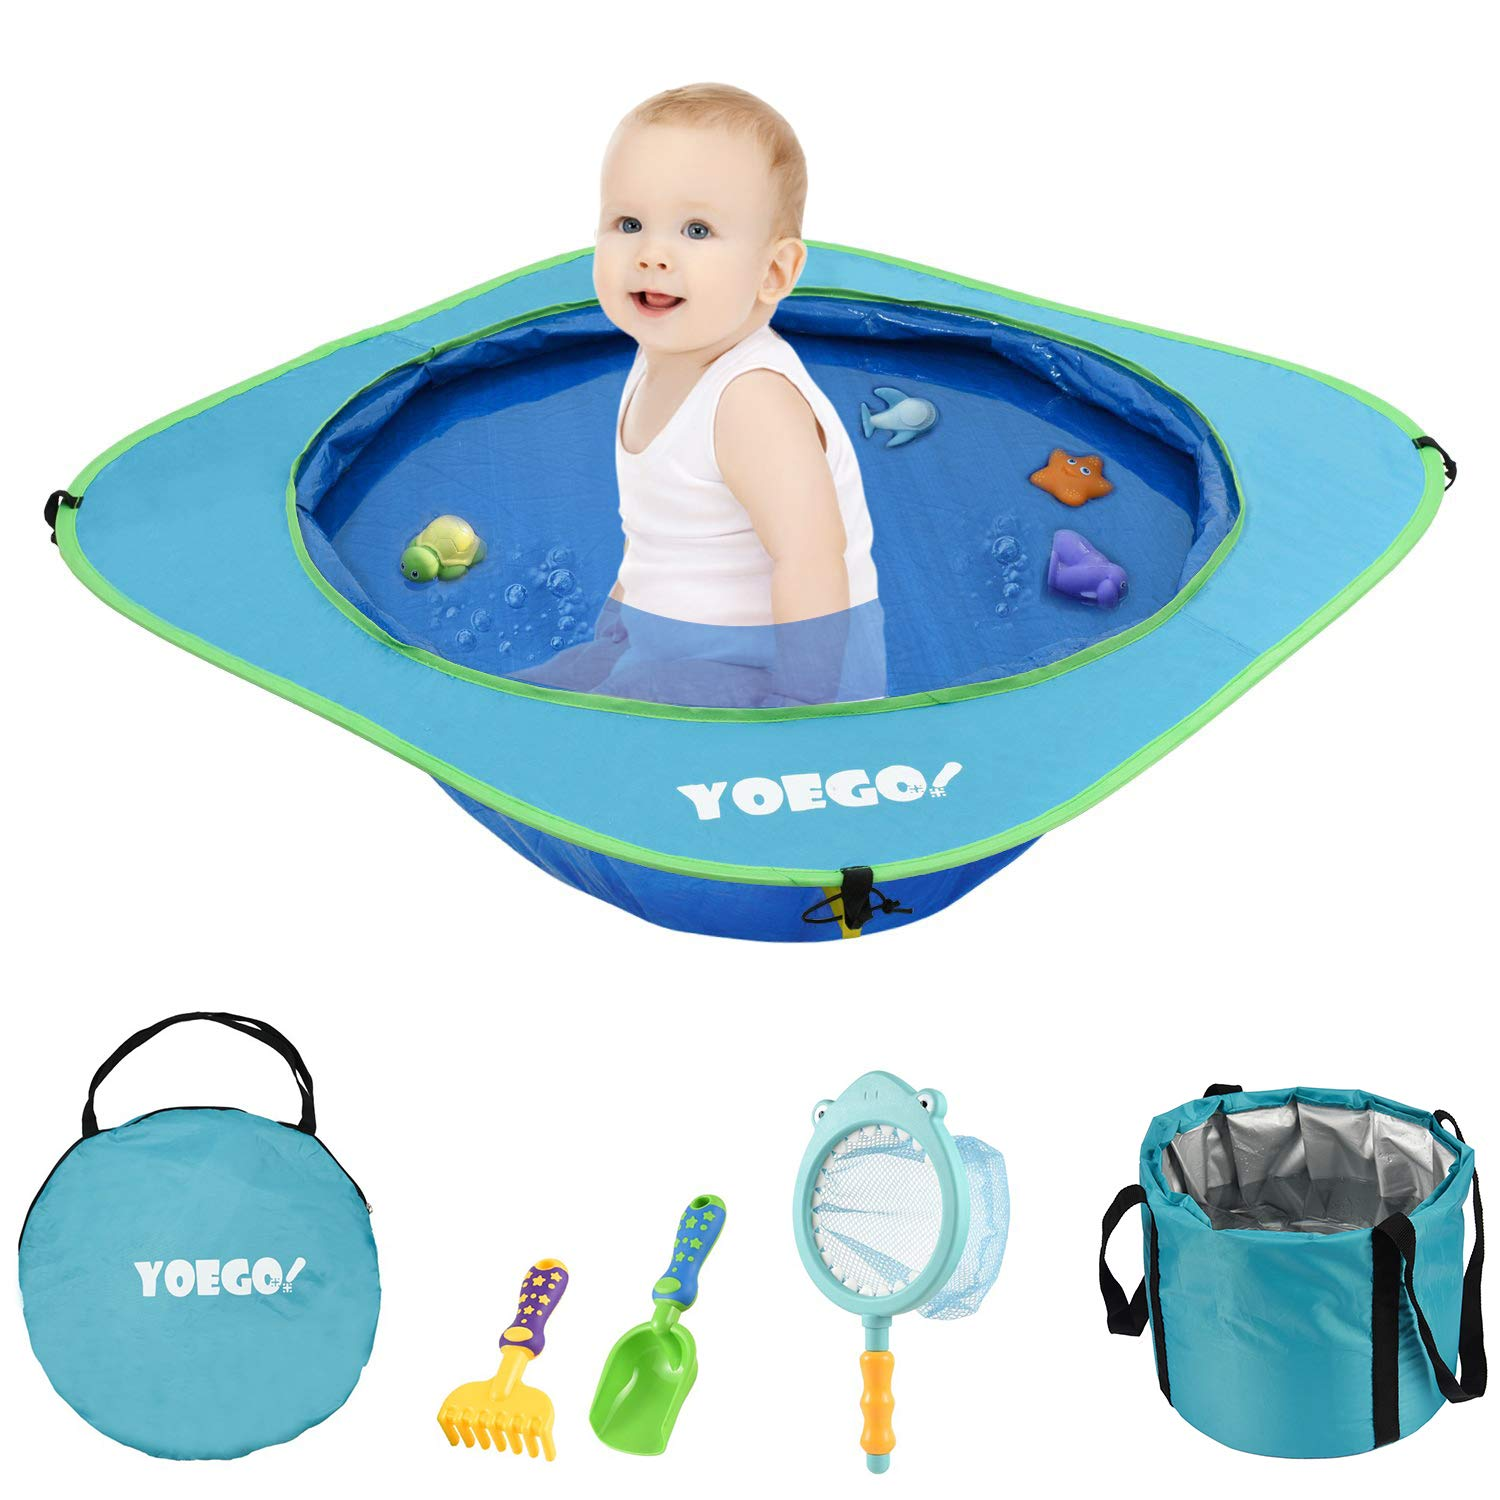 Yoego Kiddie Pool, Portable Baby Beach Swimming Pool, Toddler Pool with Baby Sand Toys Including Fish Net and Toy Fishes, Sand Shovel and Rake, Perfect for Babies Toddlers On The Beach and Indoors by Yoego